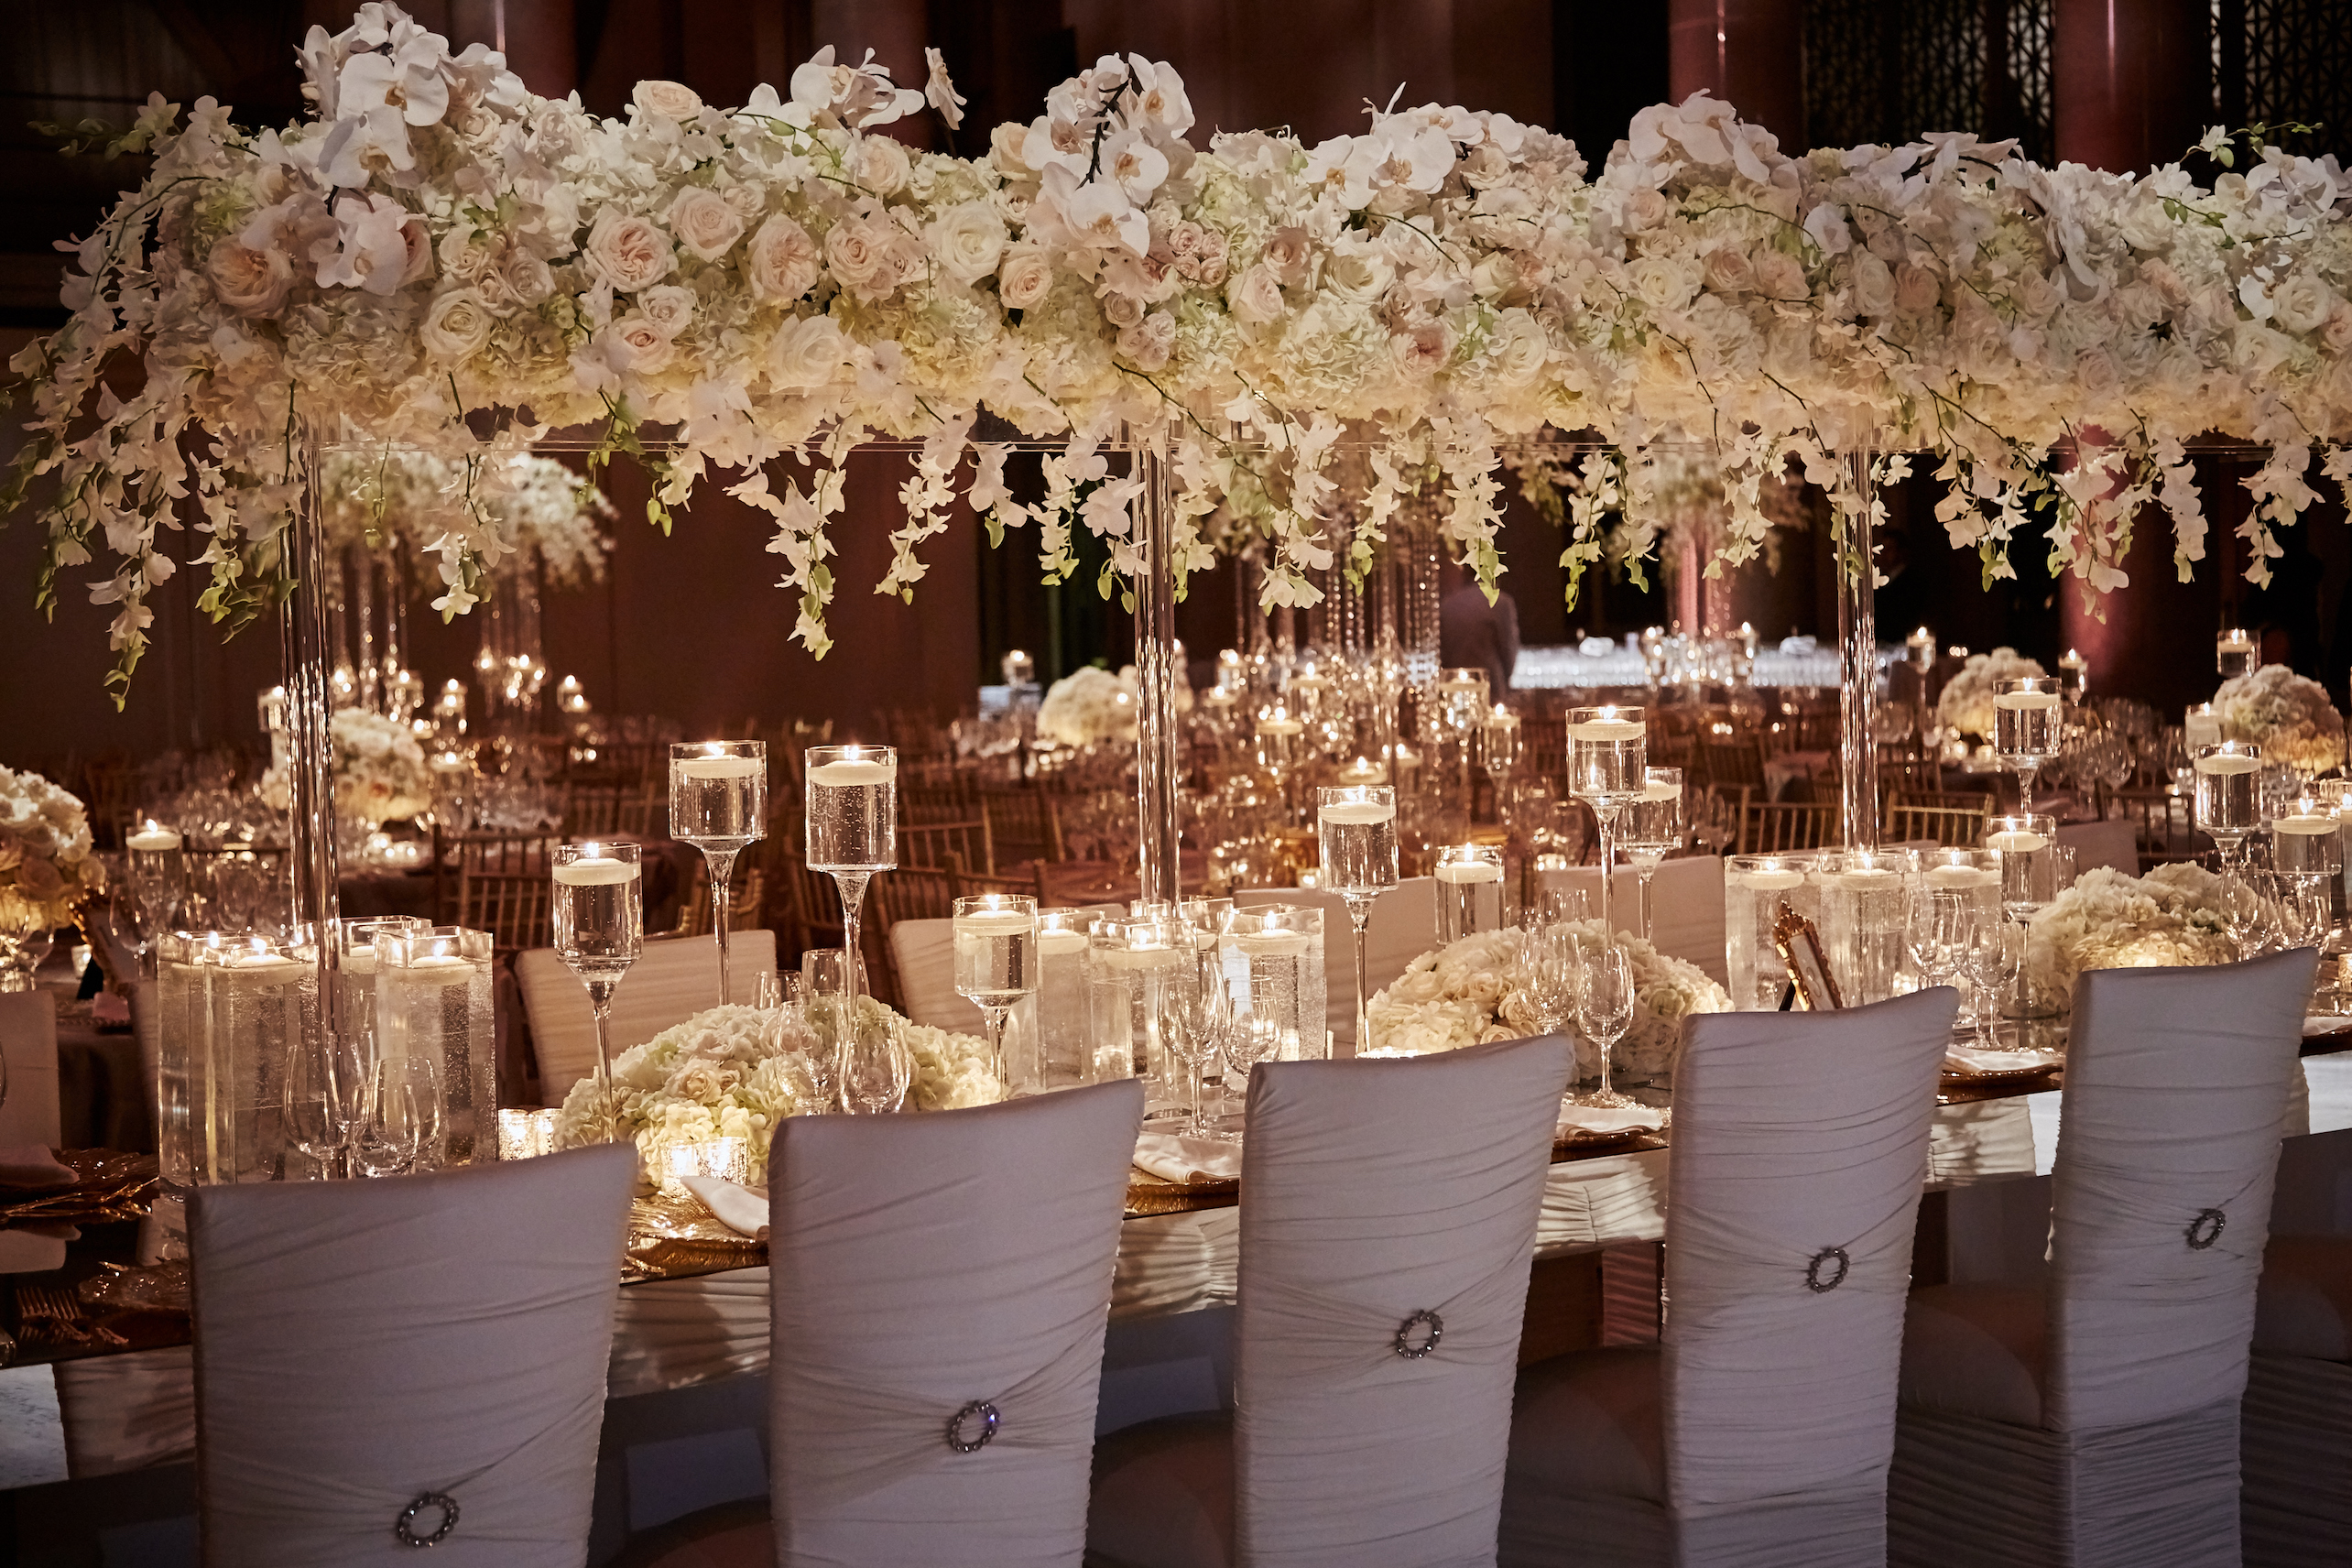 Wedding decorations usa image collections wedding decoration ideas wedding decor decorations planners angelicas design wedding2 therapyboxfo junglespirit Gallery